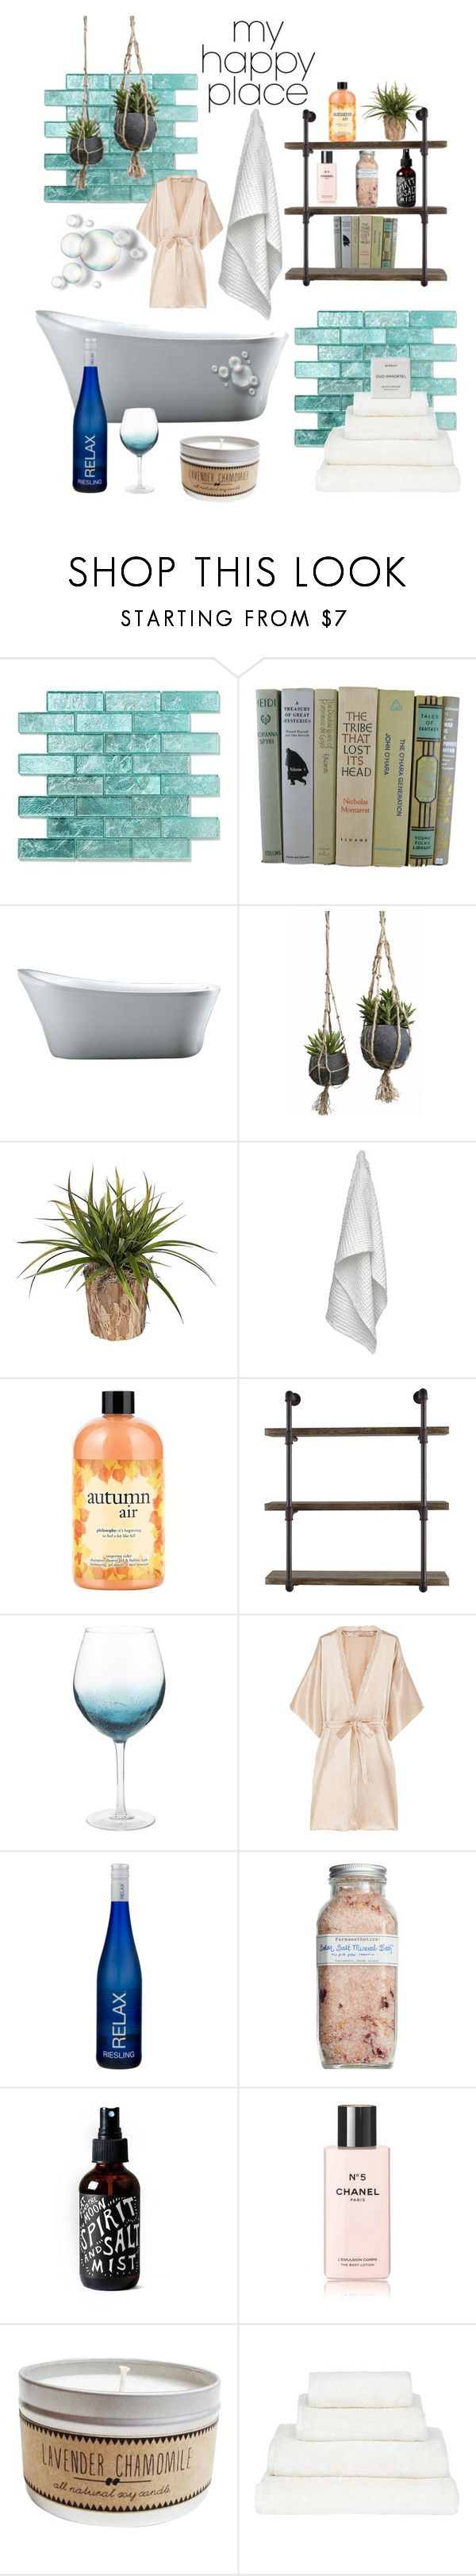 """""""My Happy Place"""" by sab26bas ❤ liked on Polyvore featuring interior, interiors, interior design, home, home decor, interior decorating, The Organic Company, Pier 1 Imports, STELLA McCARTNEY and Farmaesthetics"""